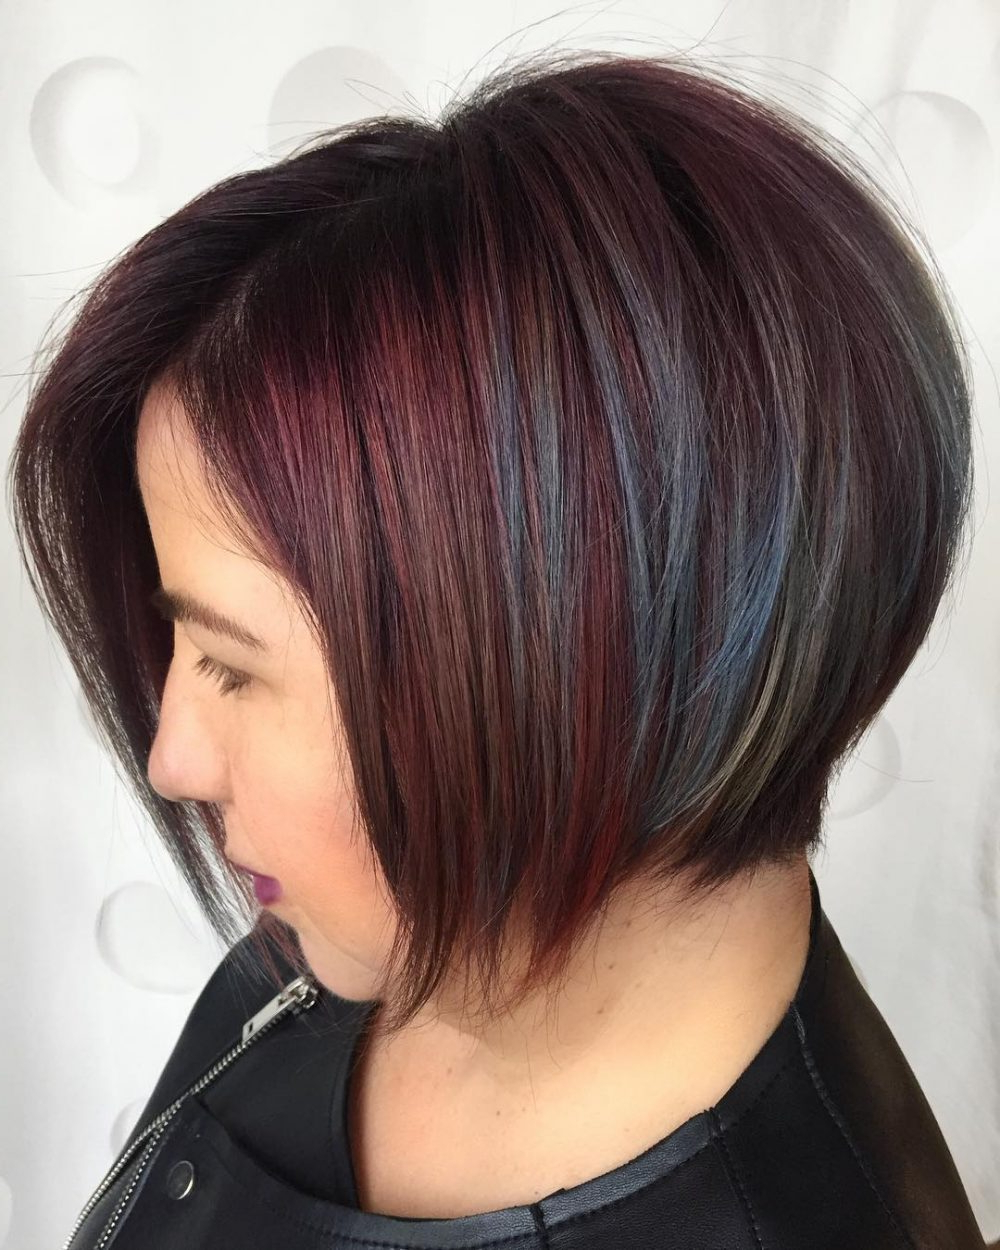 34 Greatest Short Haircuts And Hairstyles For Thick Hair For 2018 Intended For Short Haircuts Thick Wavy Hair (View 7 of 25)